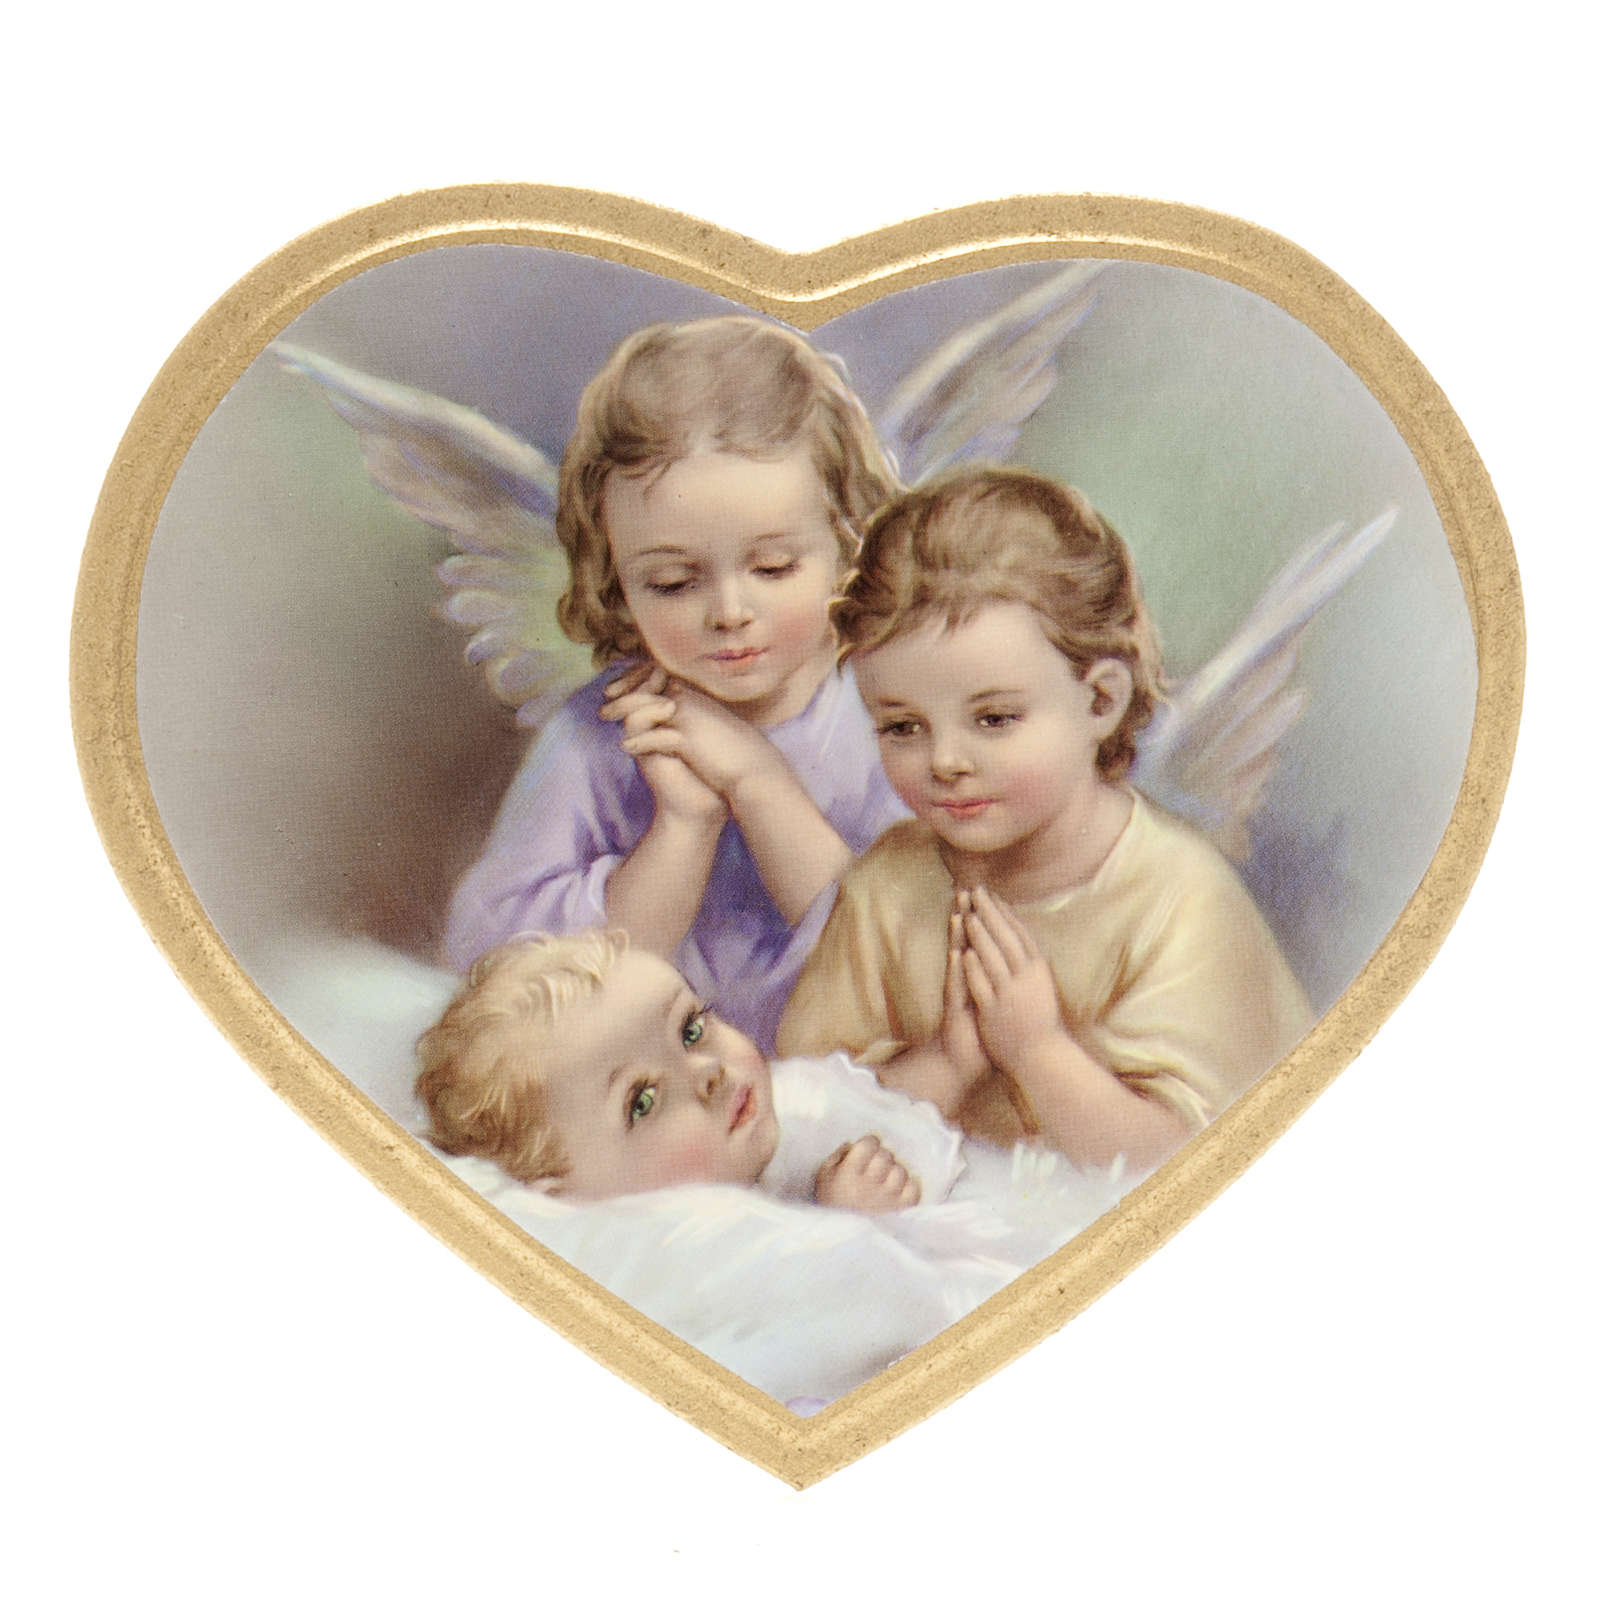 Print on wood, heart, 2 angels with baby 3